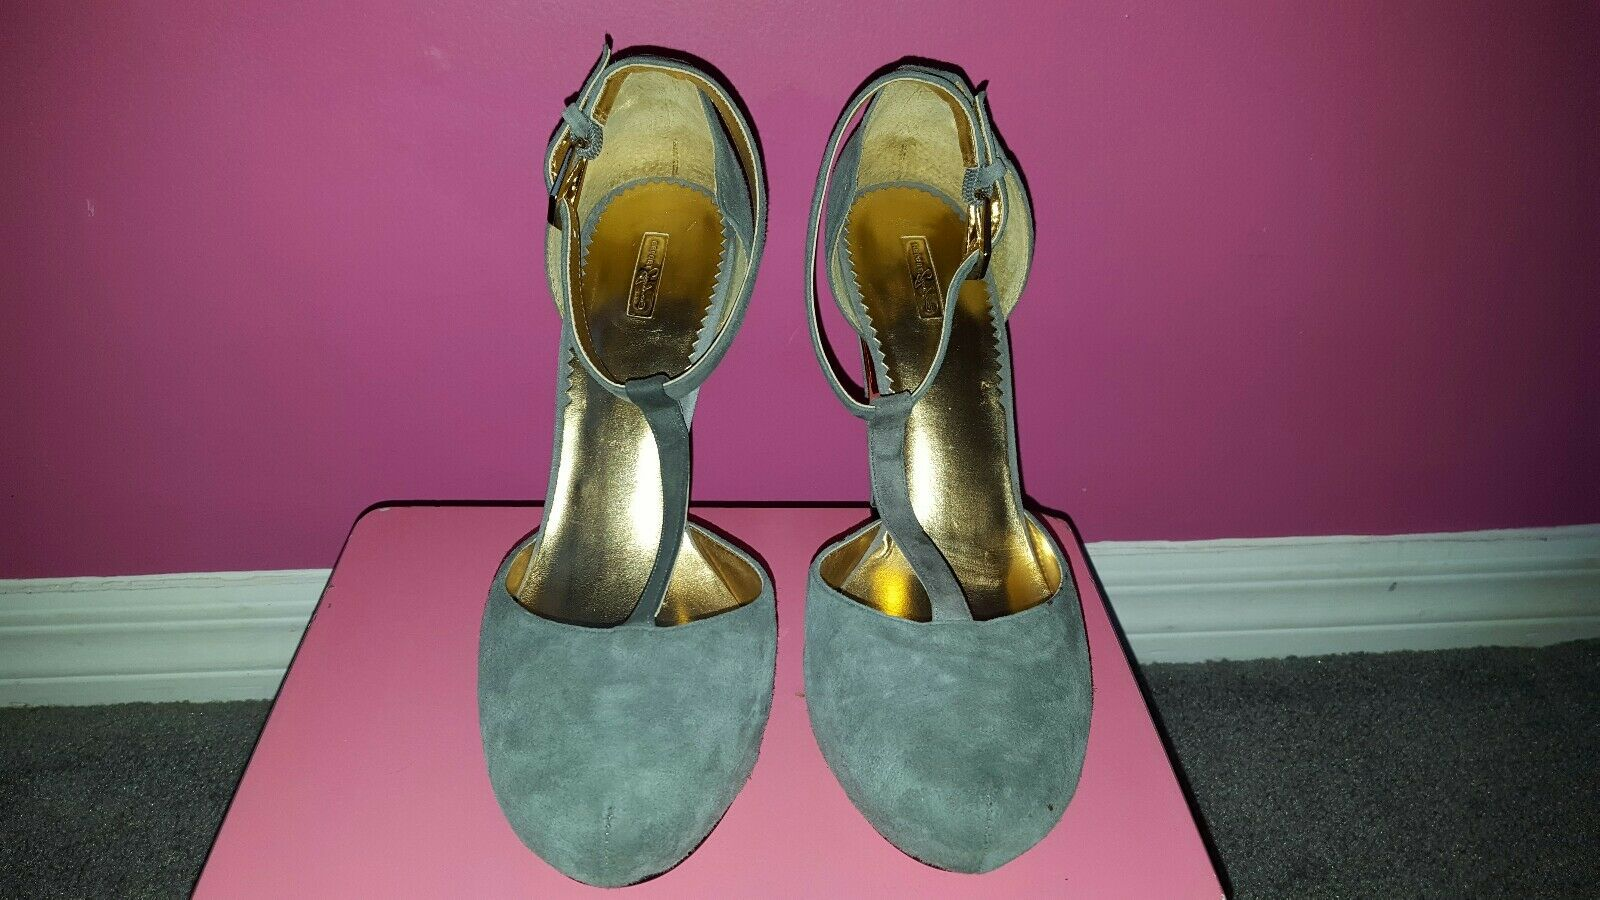 Report Signature guarda T-correa Plataforma stilletos gris Talle 10 10 10  de moda